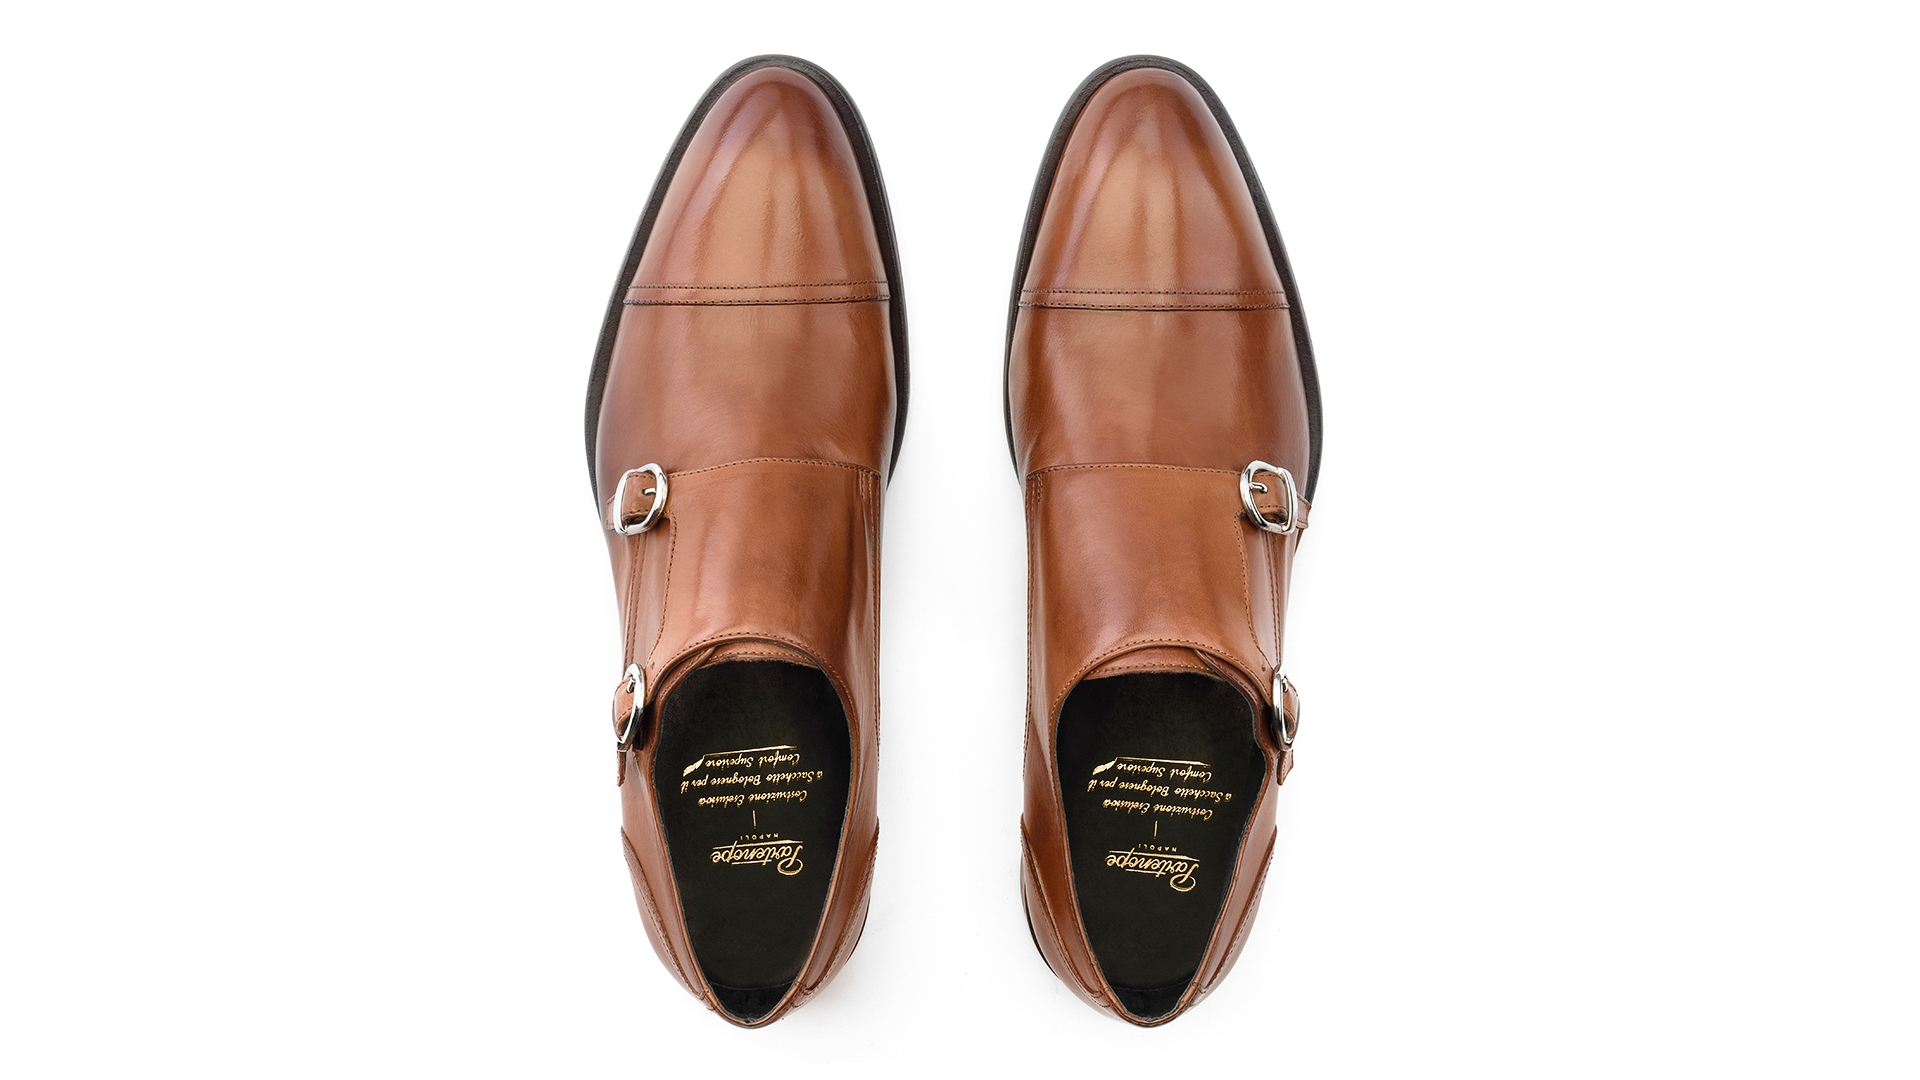 Monk Shoes Sacchetto Bolognese Cuoio